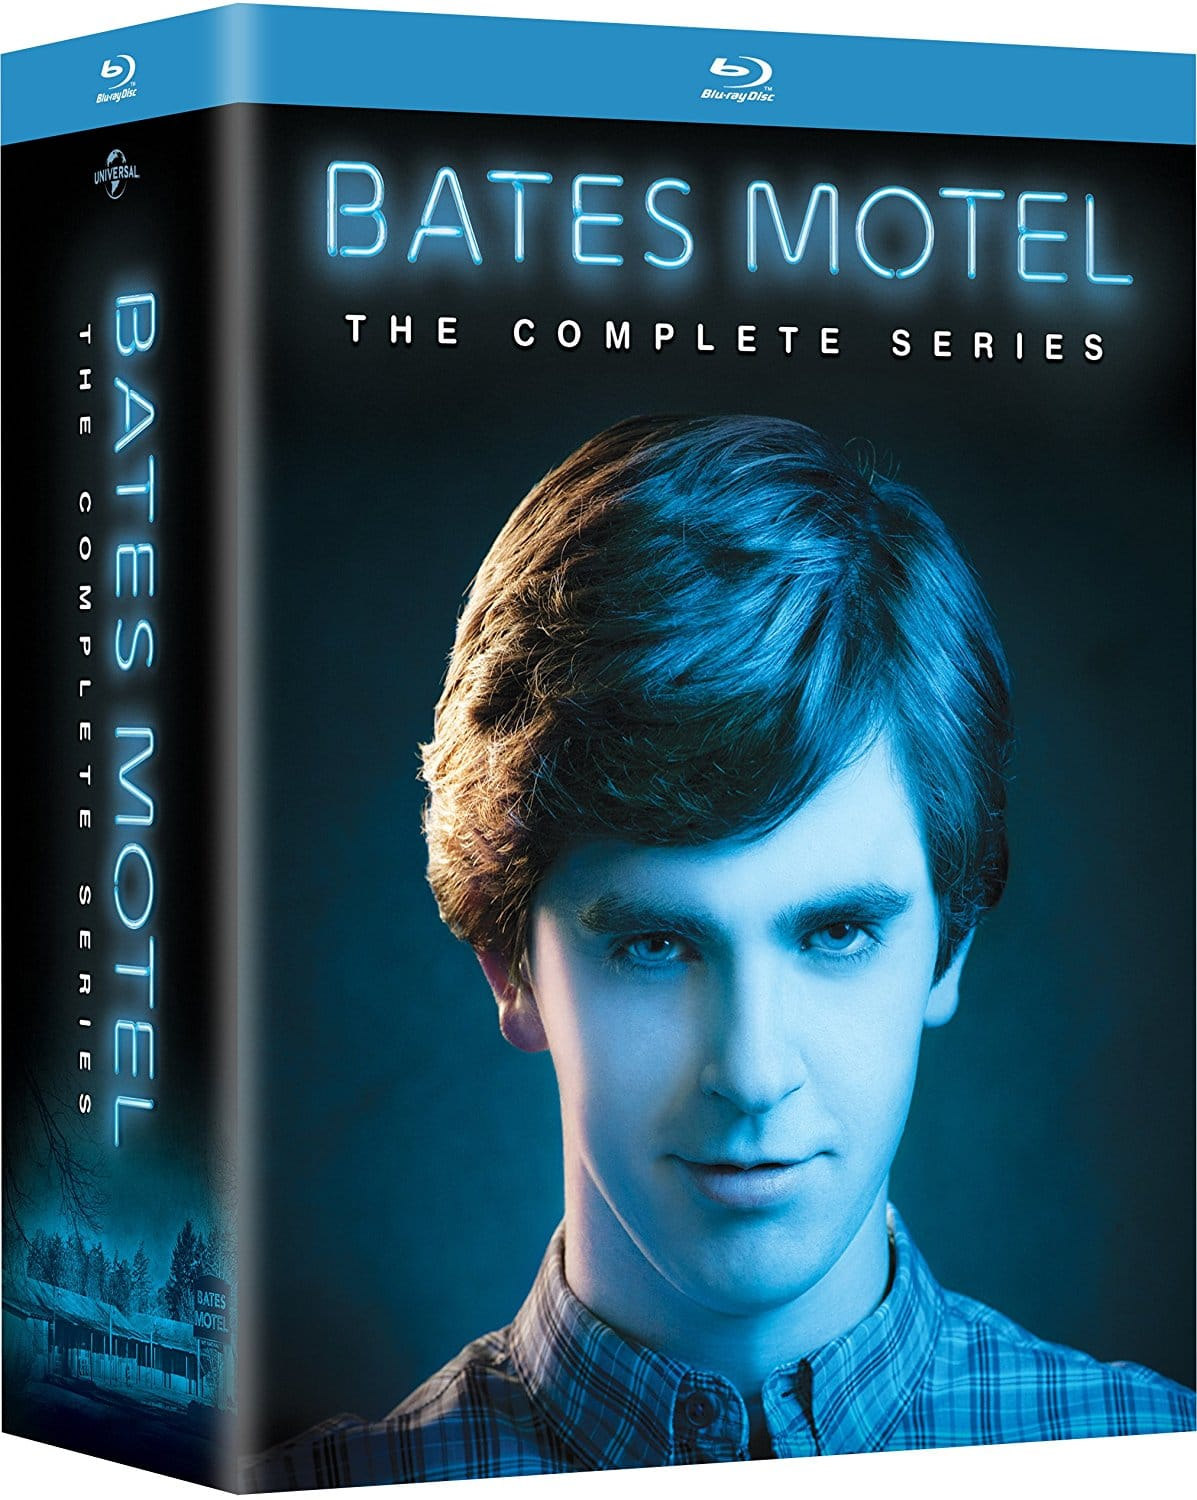 Bates Motel: The Complete Series [Blu-ray] - $78.99 at Amazon